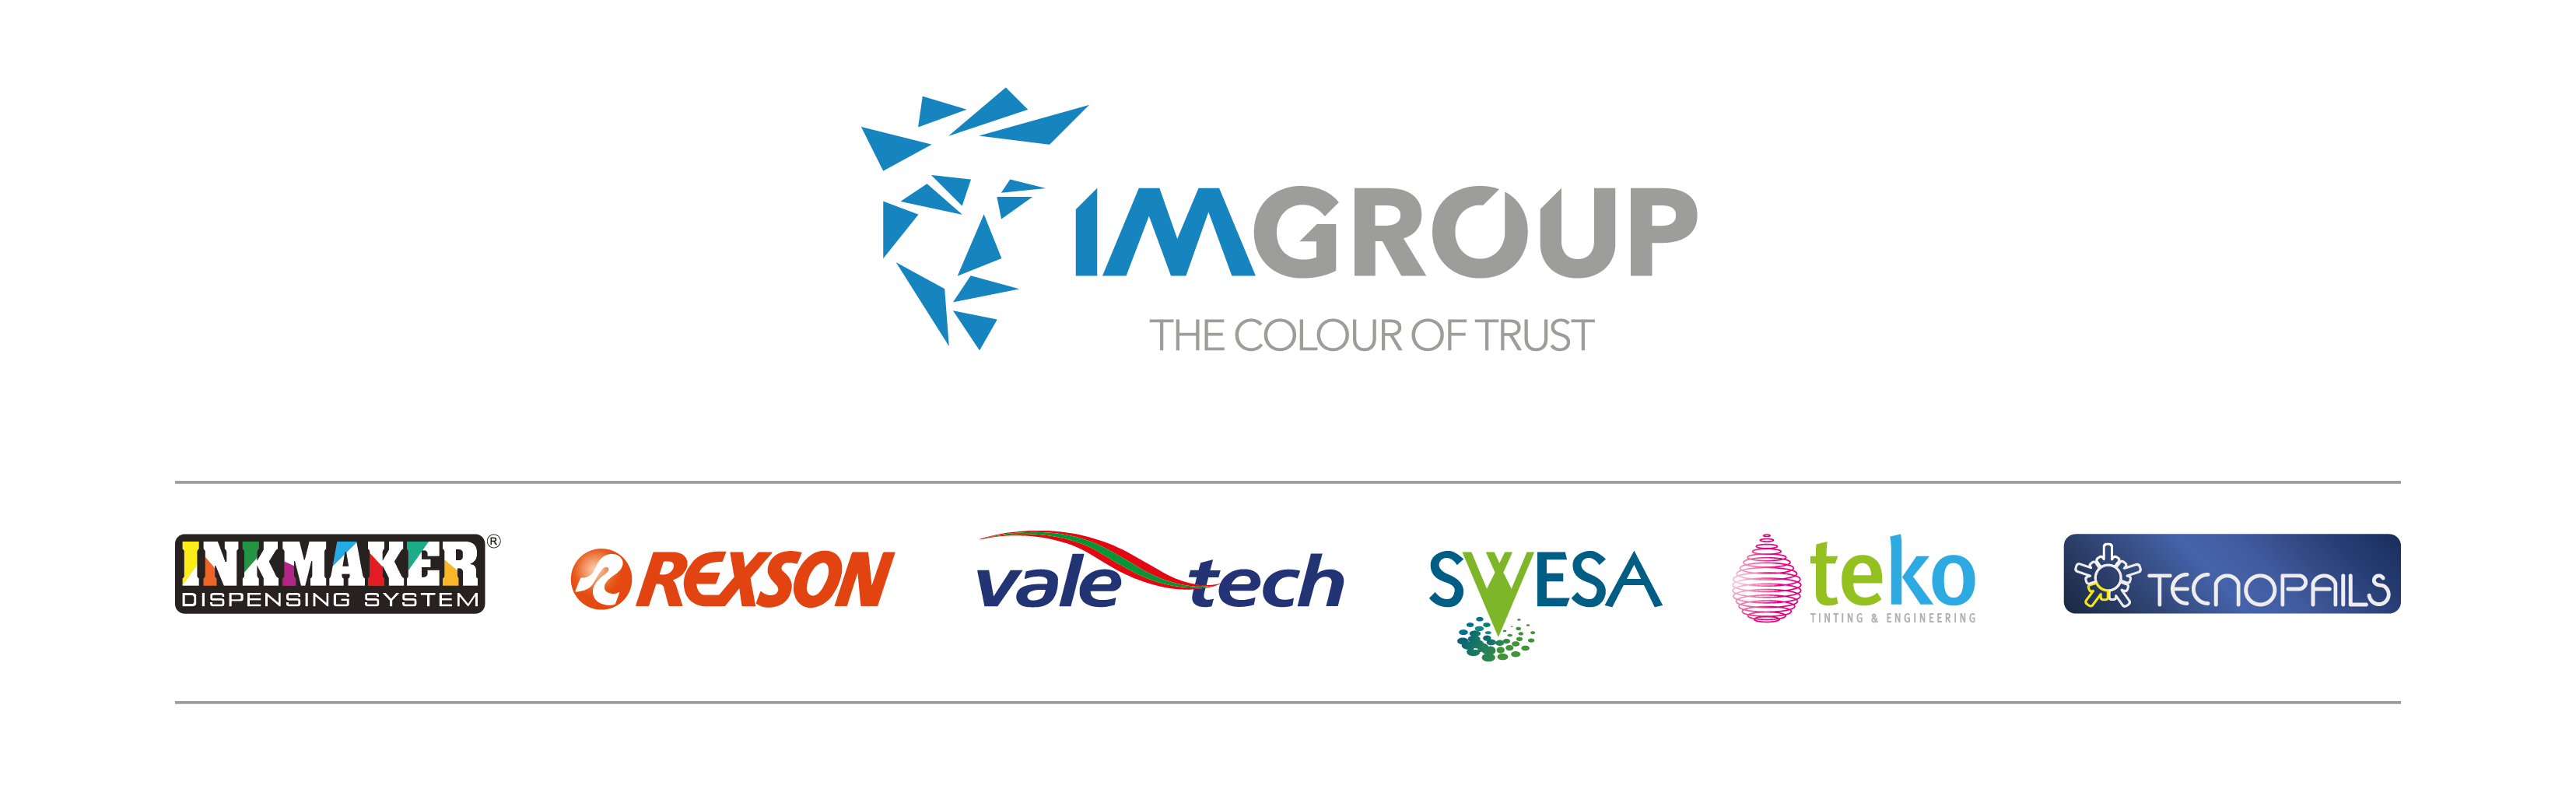 IM Group Recognized as One of the Top 10 Chemical Solutions Providers